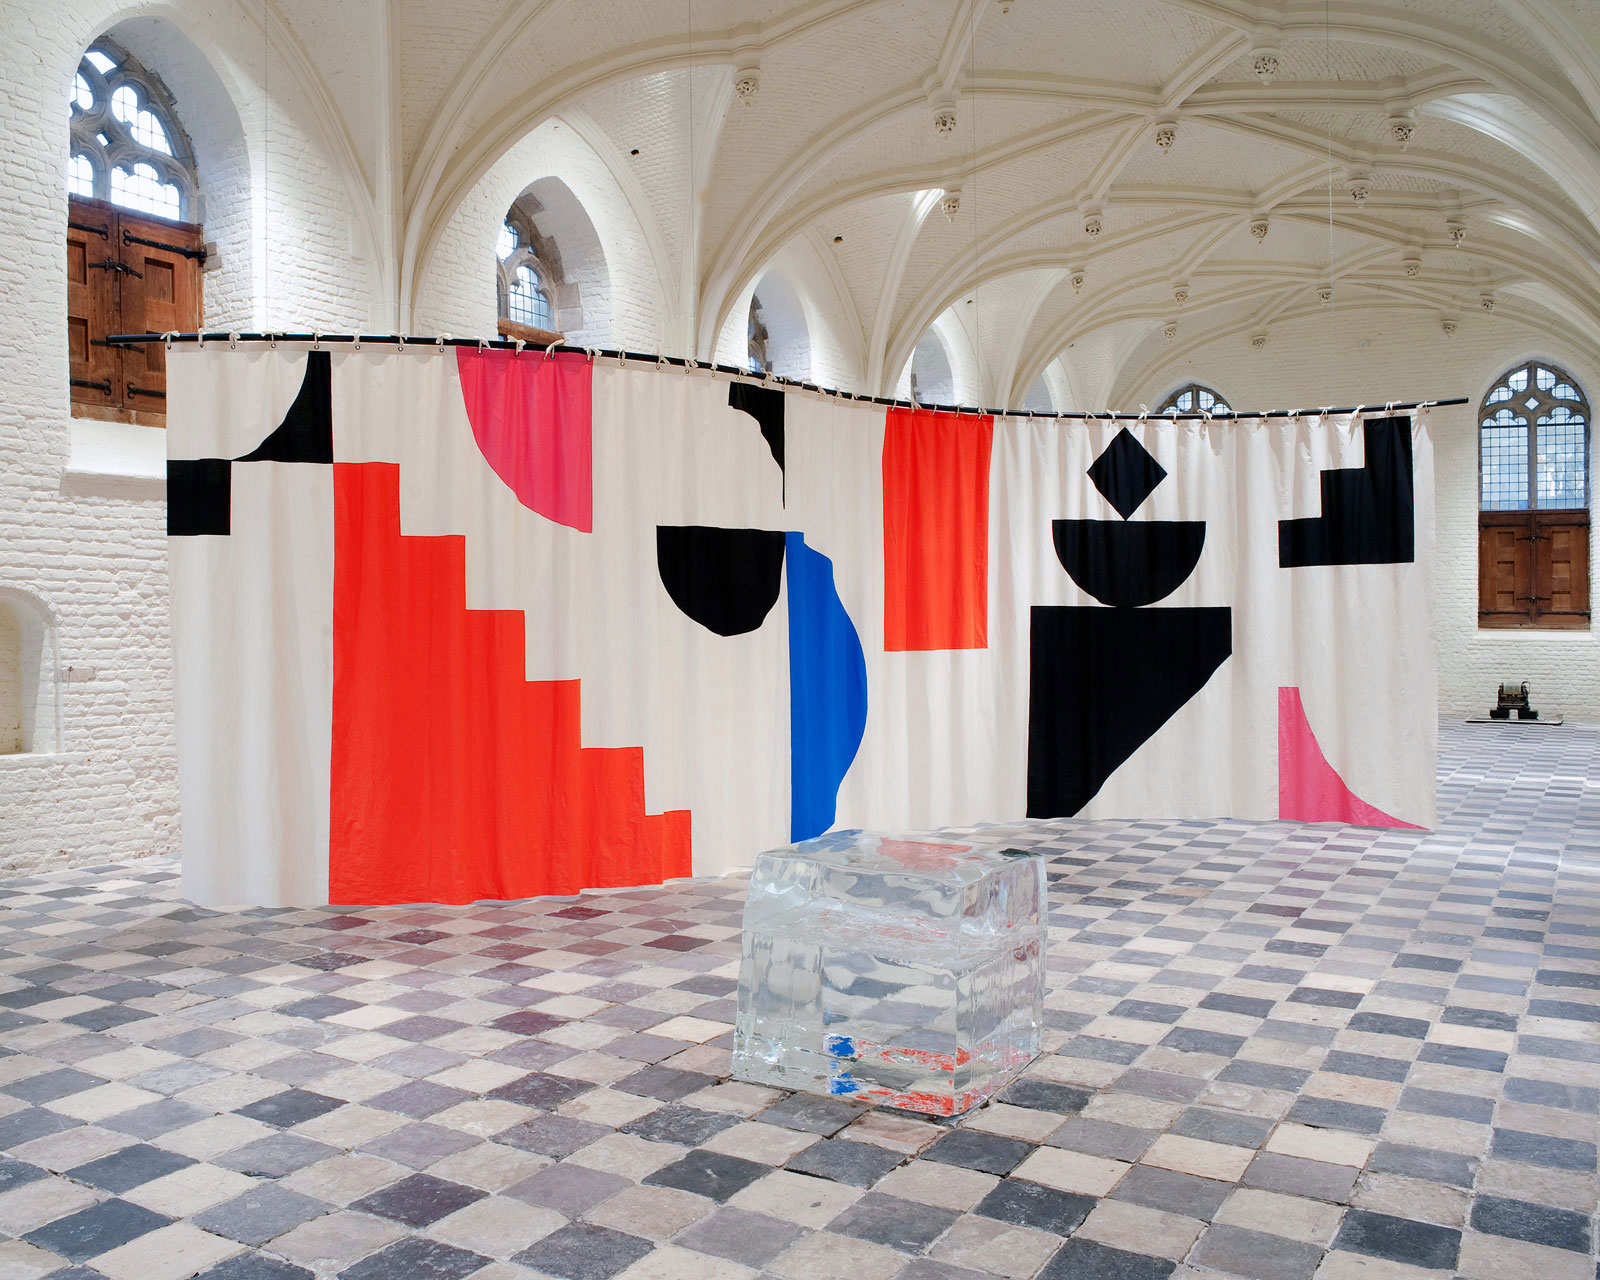 The Middelburg Curtain, 2011<br/>installation view at De Vleeshal, Middelburg (NL), 2011<br/>with work by Guillaume Leblon